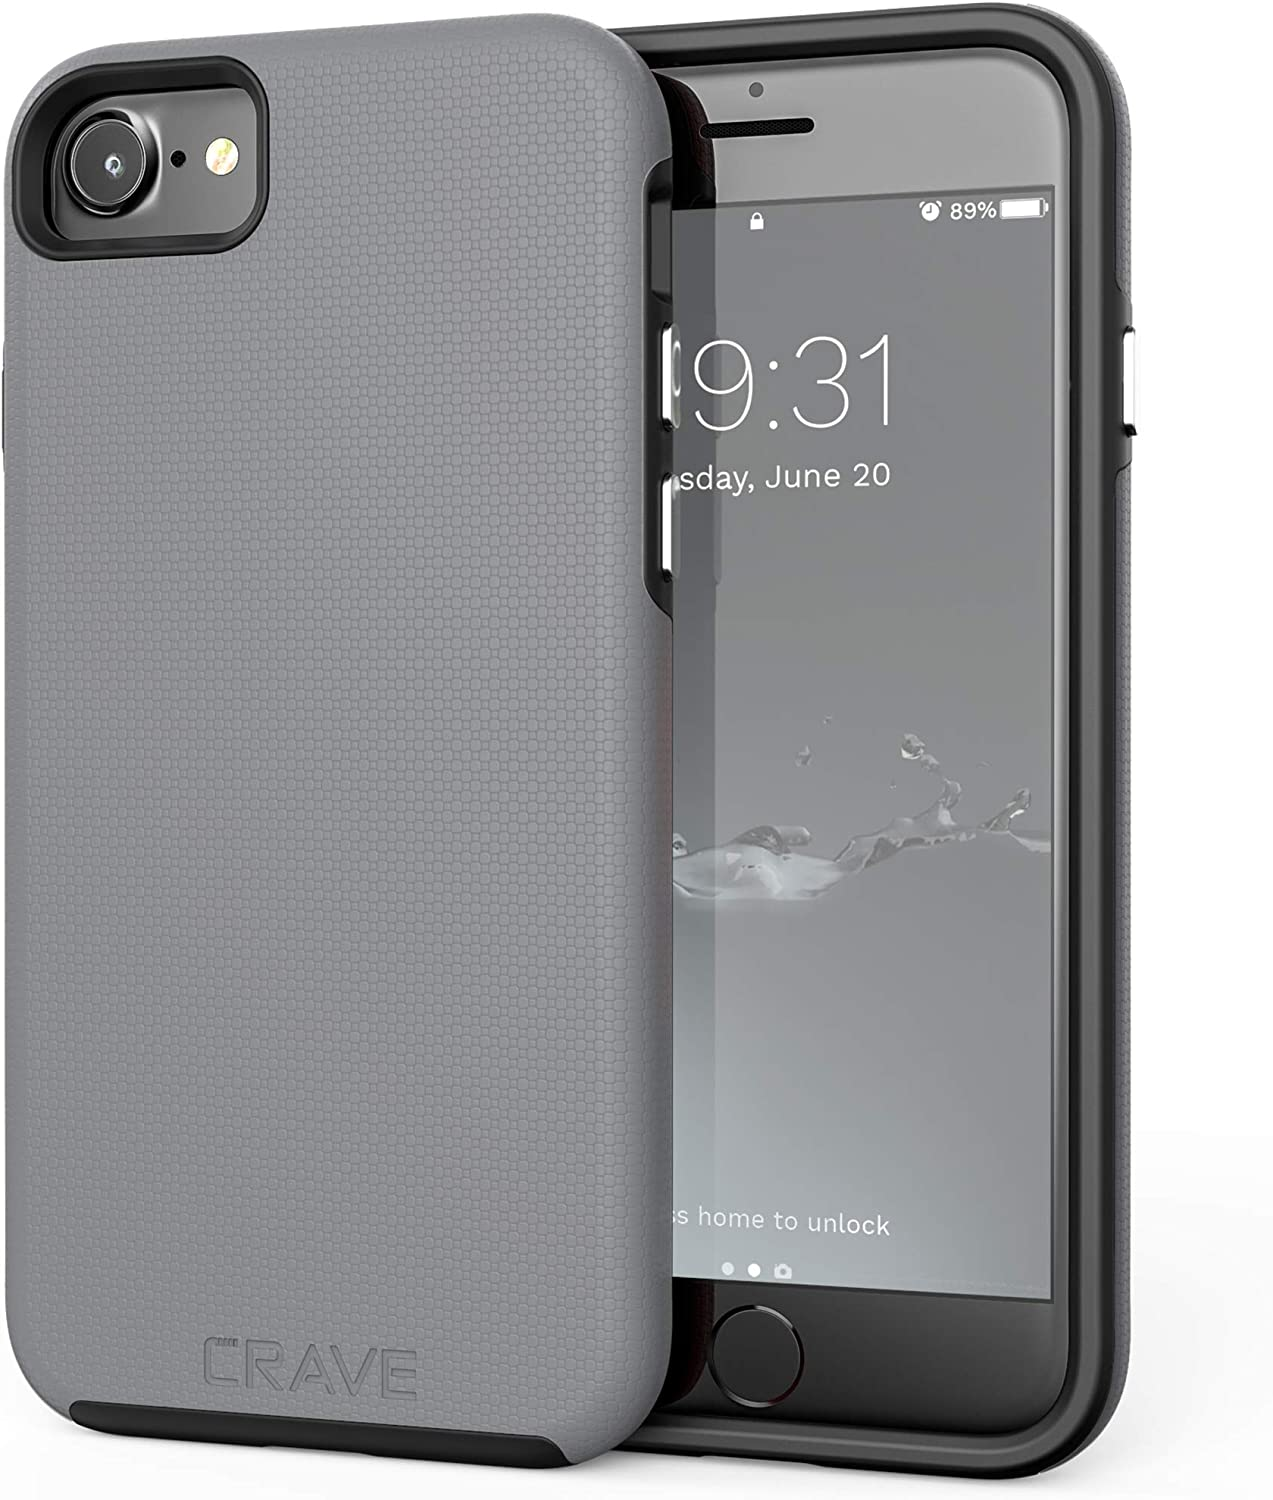 Crave iPhone SE 2020 Case, iPhone 8 Case, iPhone 7 Case, Dual Guard Protection Series Case for Apple iPhone SE/8/7 (4.7 Inch) - Slate